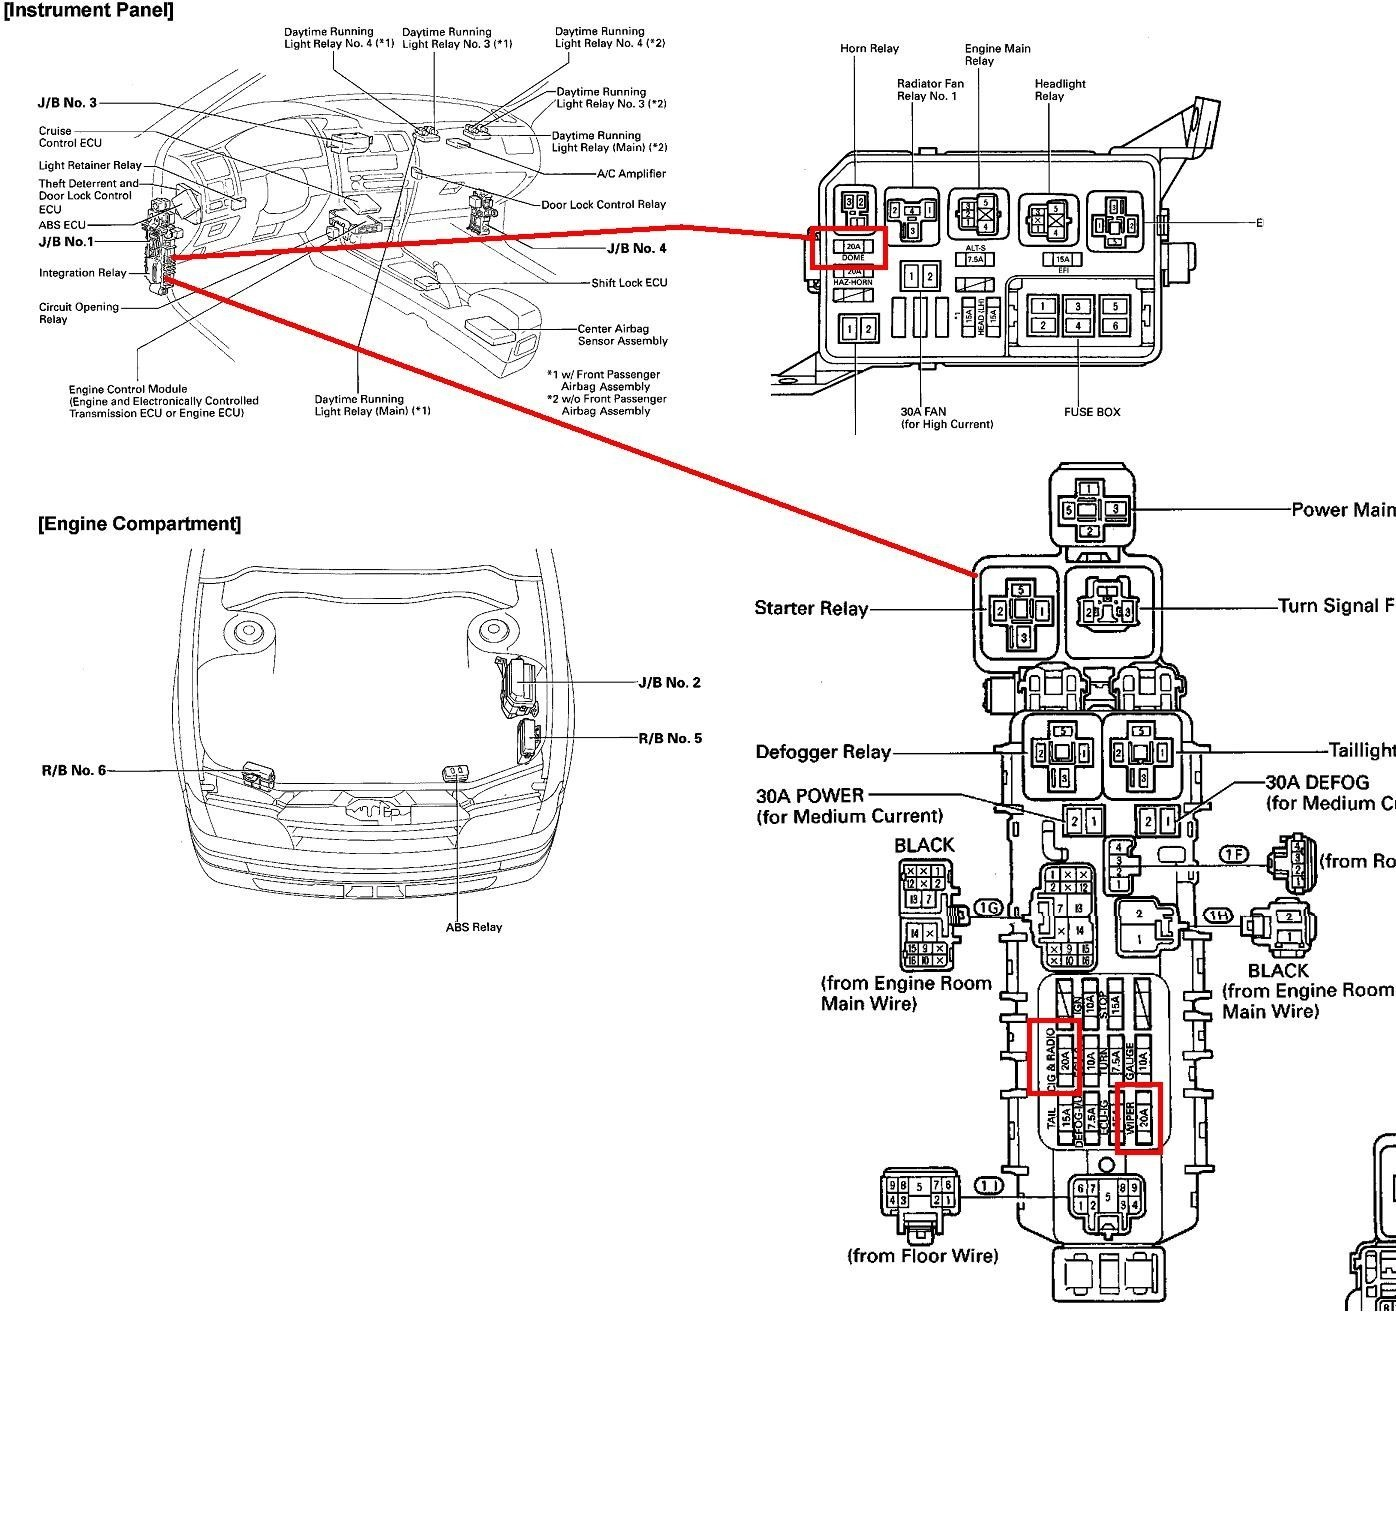 Toyota Rav Engine Diagram Corolla Wiring Harness Another Blog About Wiring Diagram E A Of Toyota Rav Engine Diagram on 2006 Ford Freestyle Fuse Box Diagram